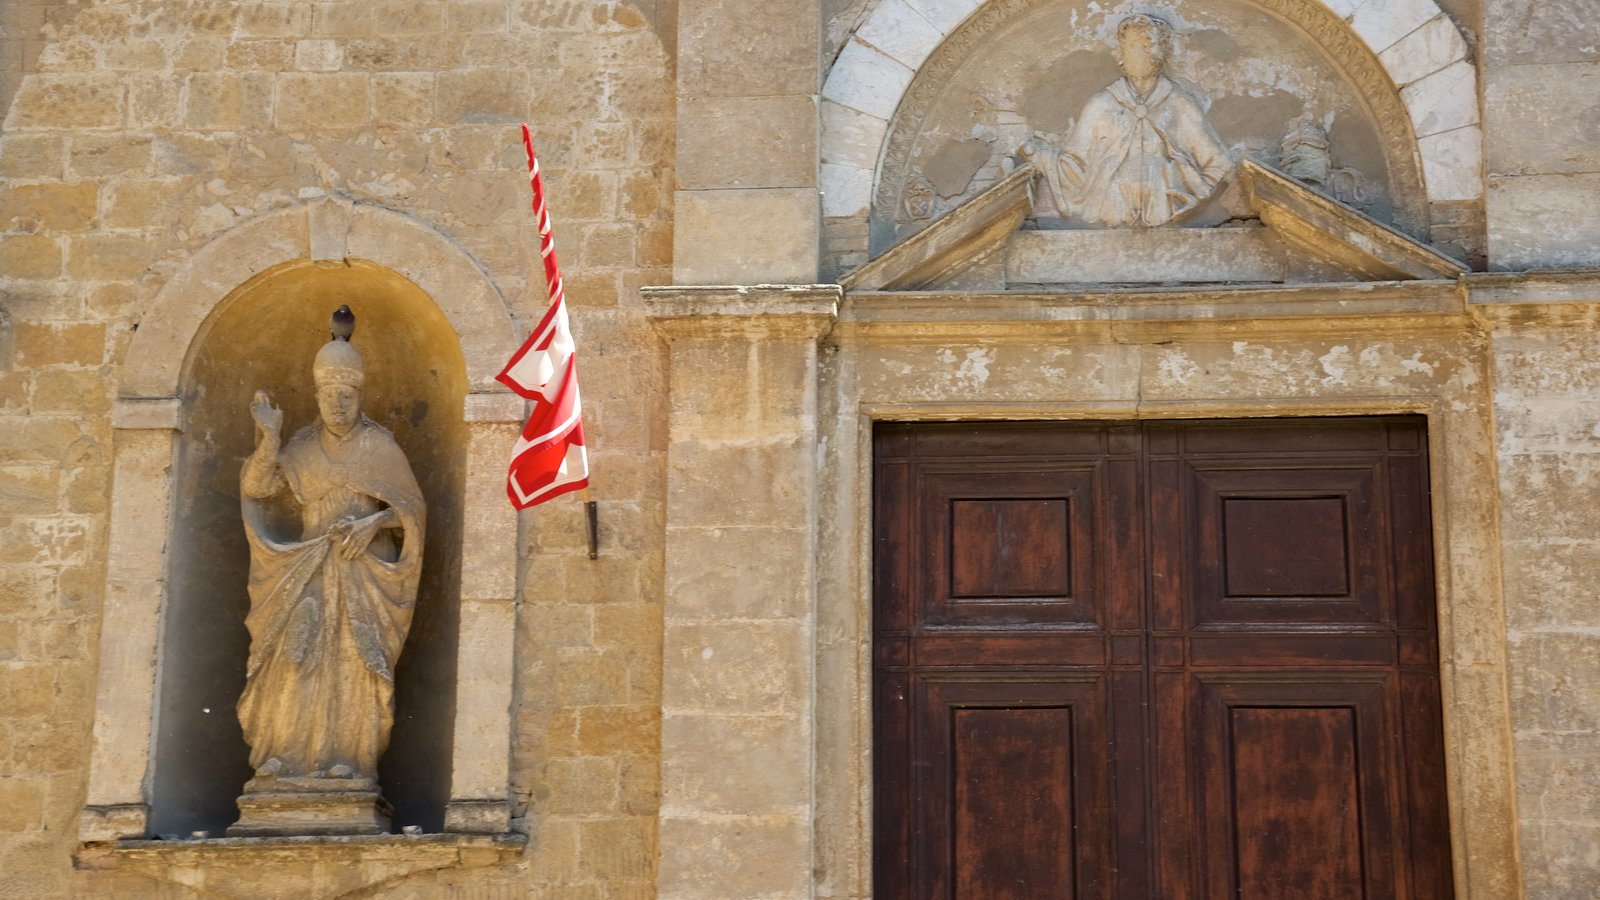 Volterra which includes a statue or sculpture, a church or cathedral and heritage architecture